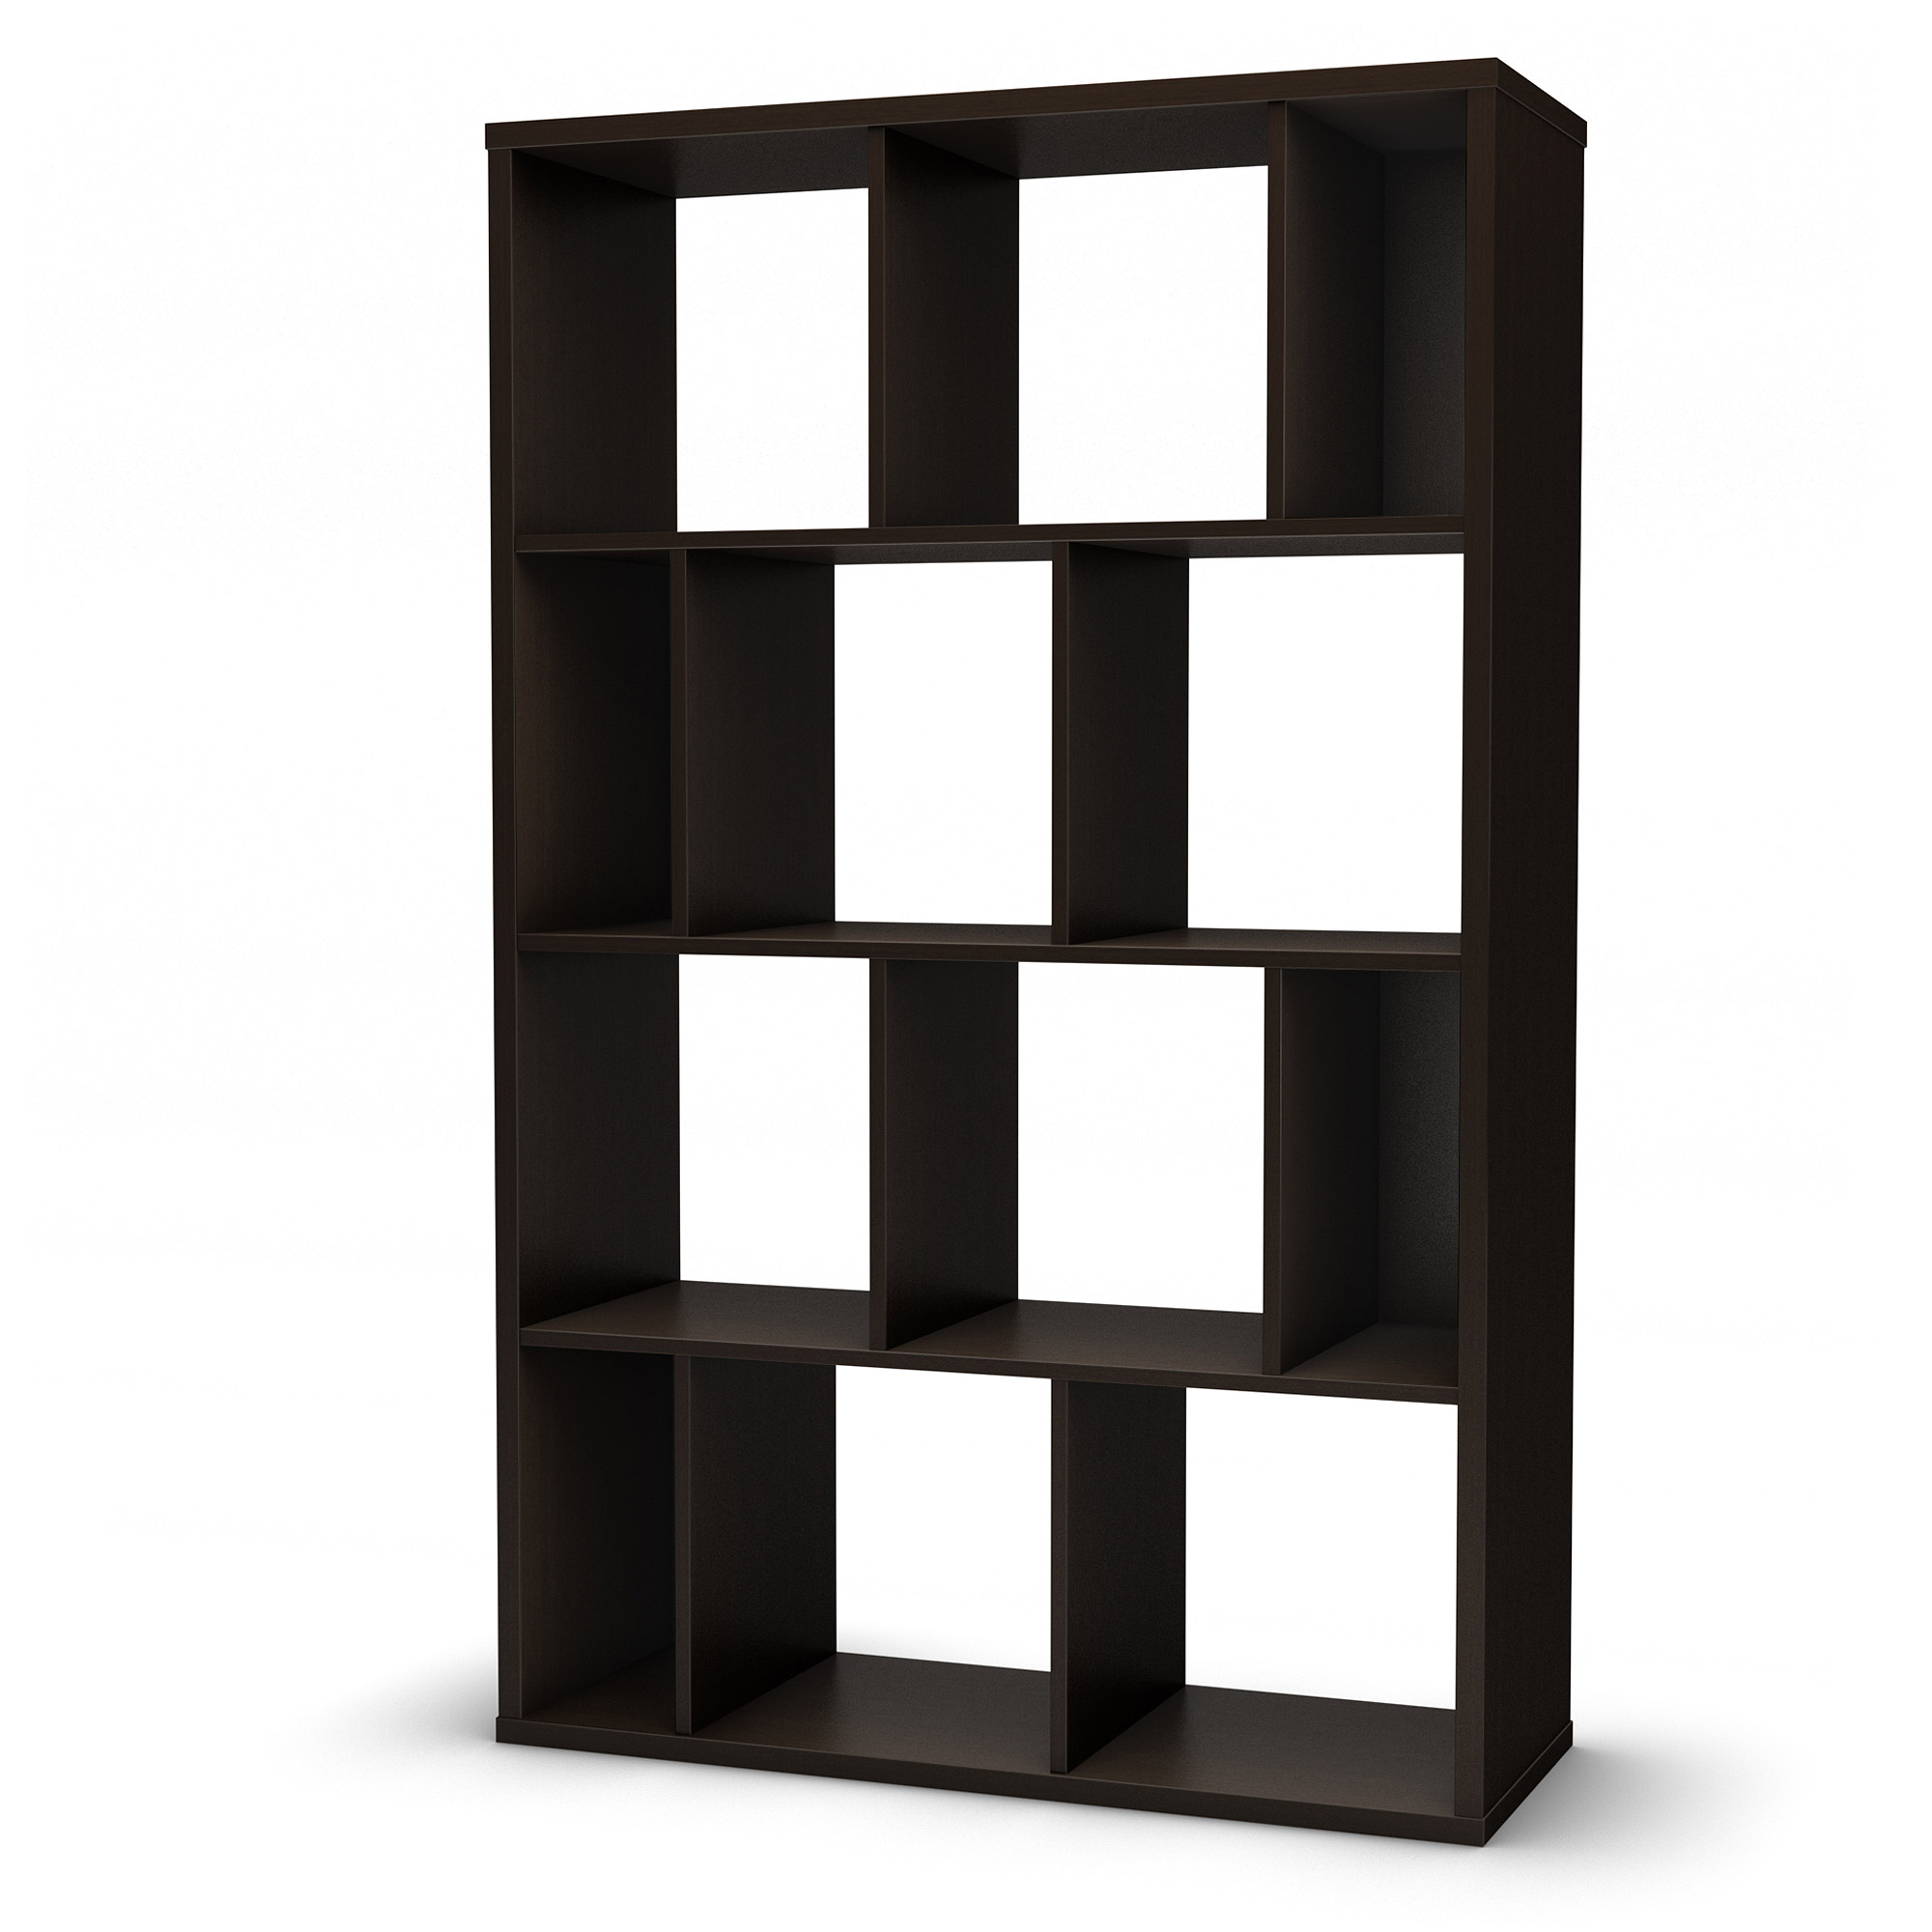 South Shore Reveal Shelving Unit with 12 Compartments, Multiple Finishes